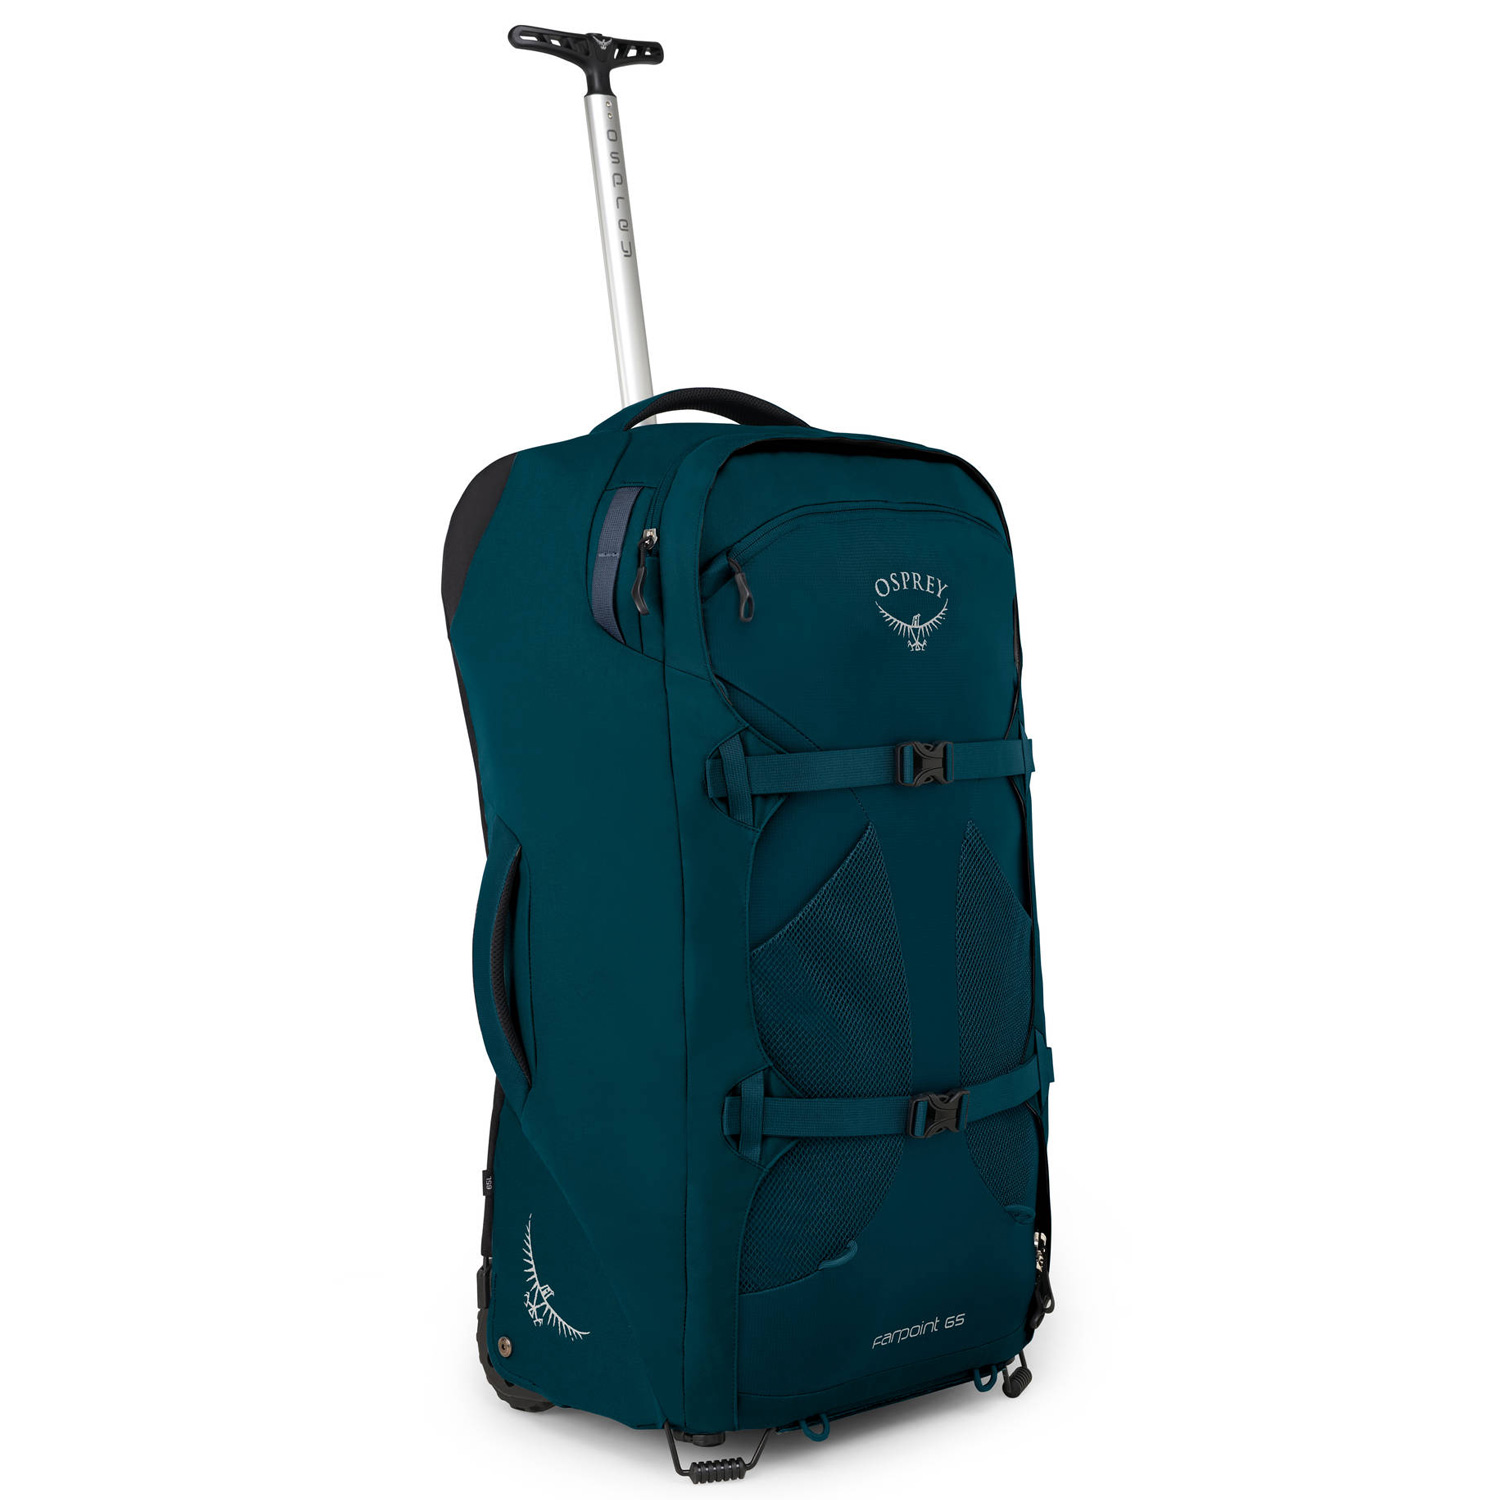 Picture of Osprey Farpoint Wheels 65 - Travel Bag - Petrol Blue